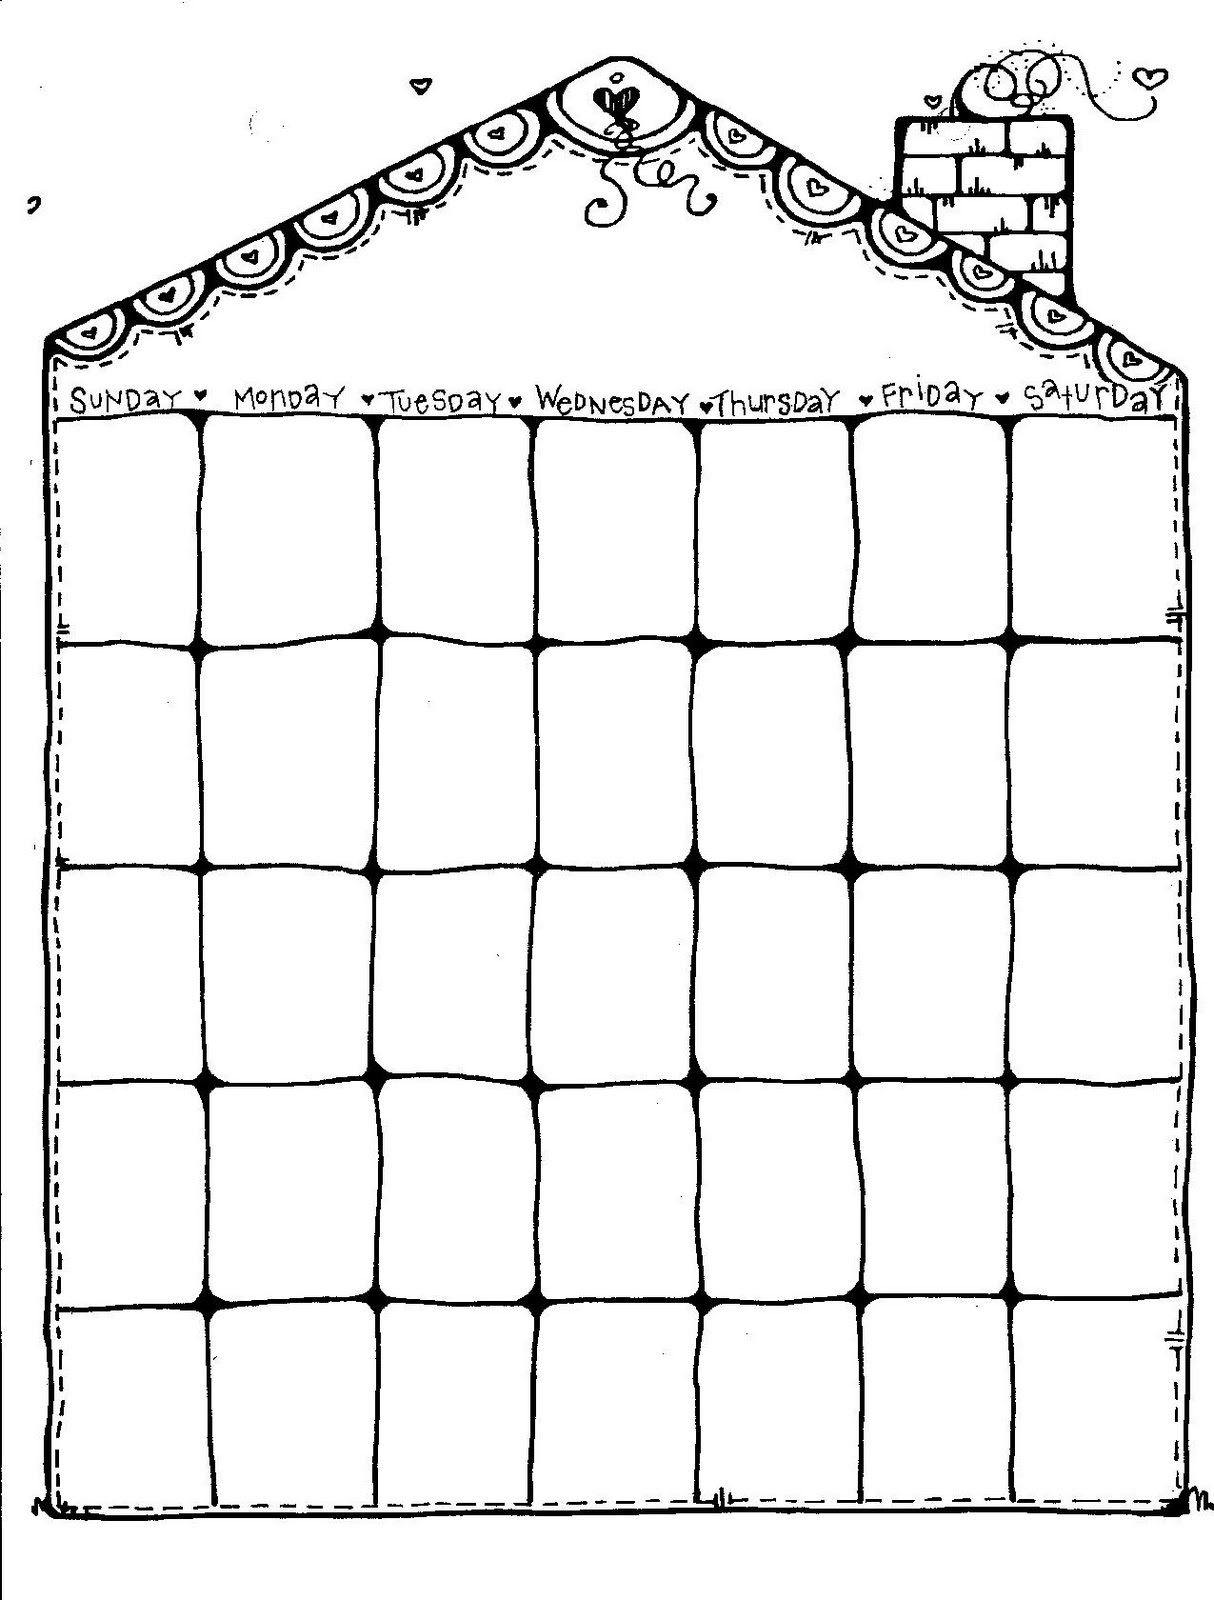 Weekly Calendar Blank : Blank weekly calendars printable activity shelter